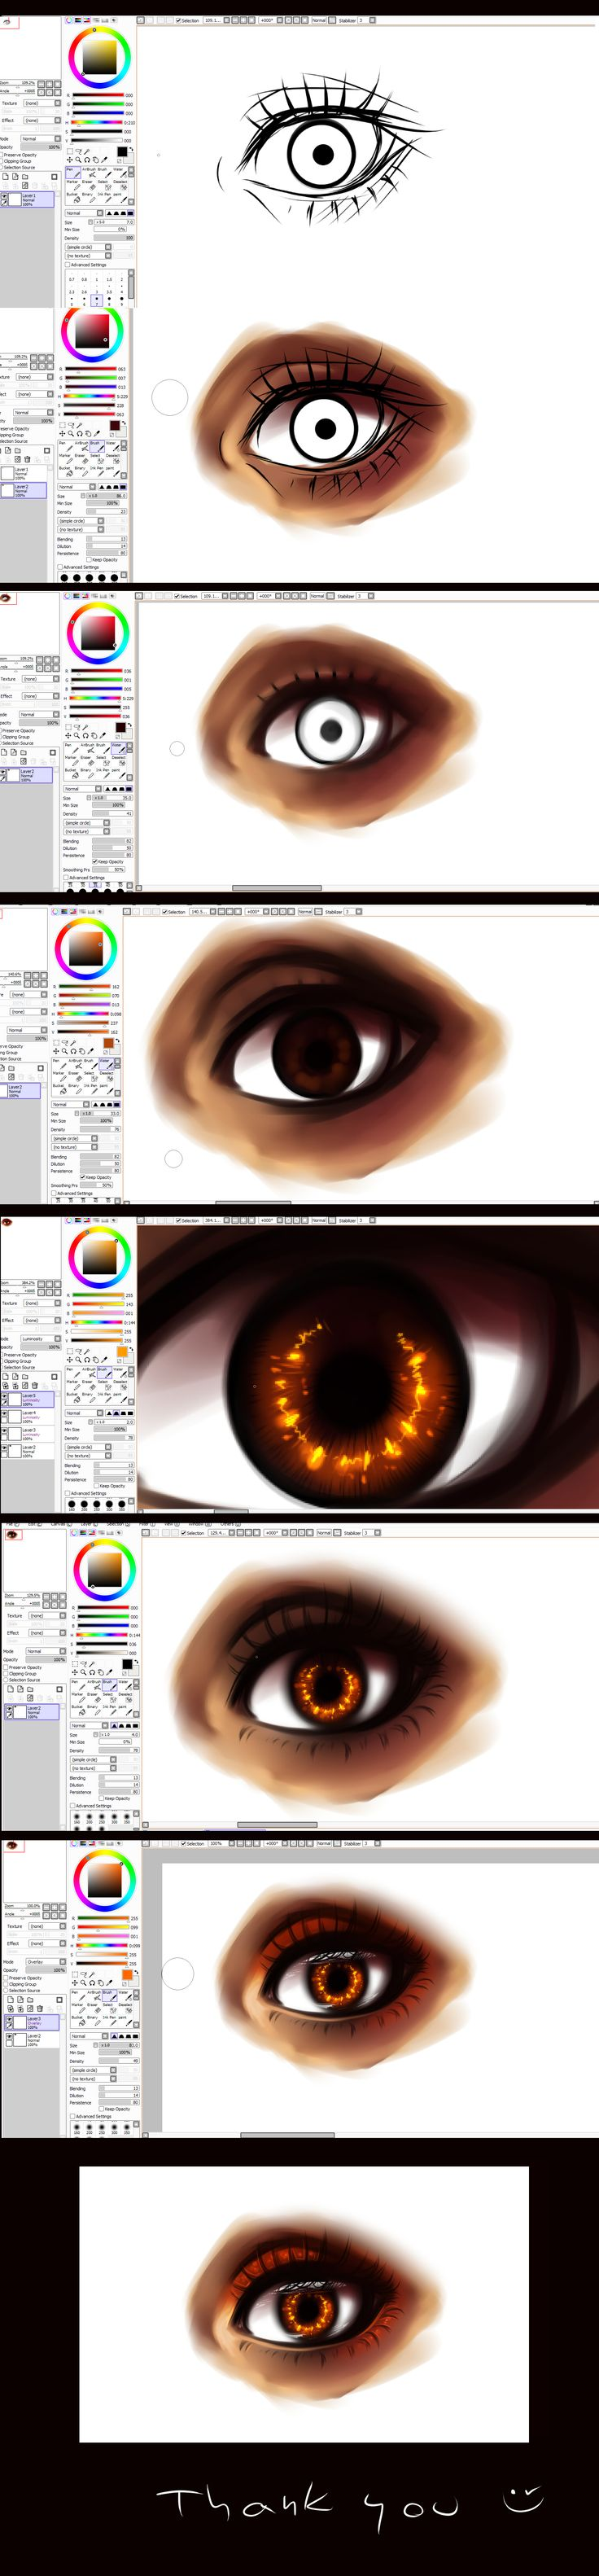 96 best tutorials paint tool sai images on pinterest drawing paint tool sai eye tutorial by rykyiantart on deviantart ccuart Gallery